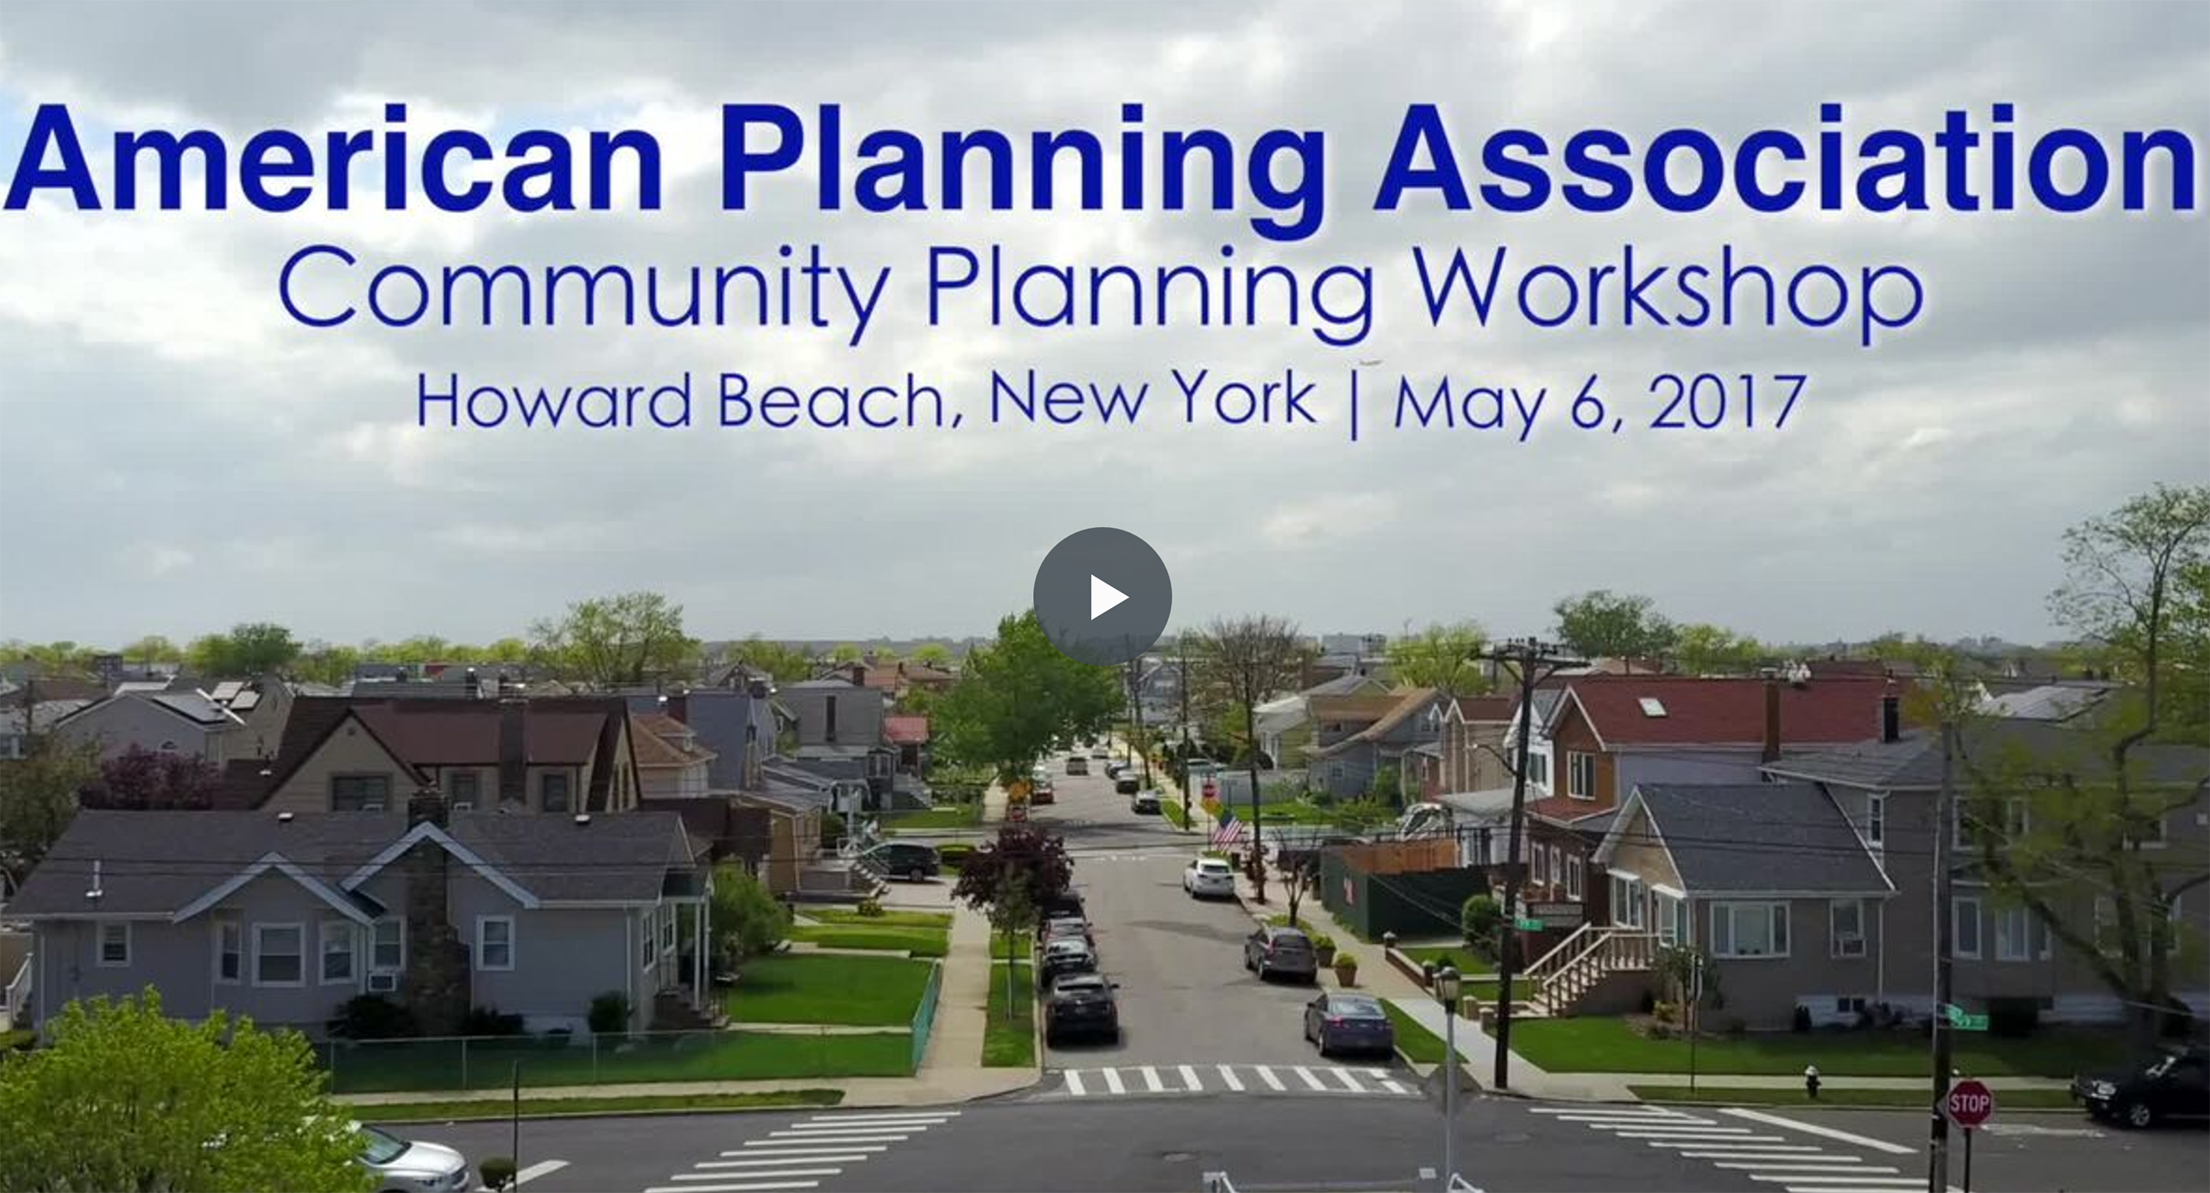 Still frame from a video highlighting the APA Community Planning Workshop Howard Beach, NY. The text reads: American Planning Association Community Planning Workshop, Howard Beach, NY, May 6, 2017